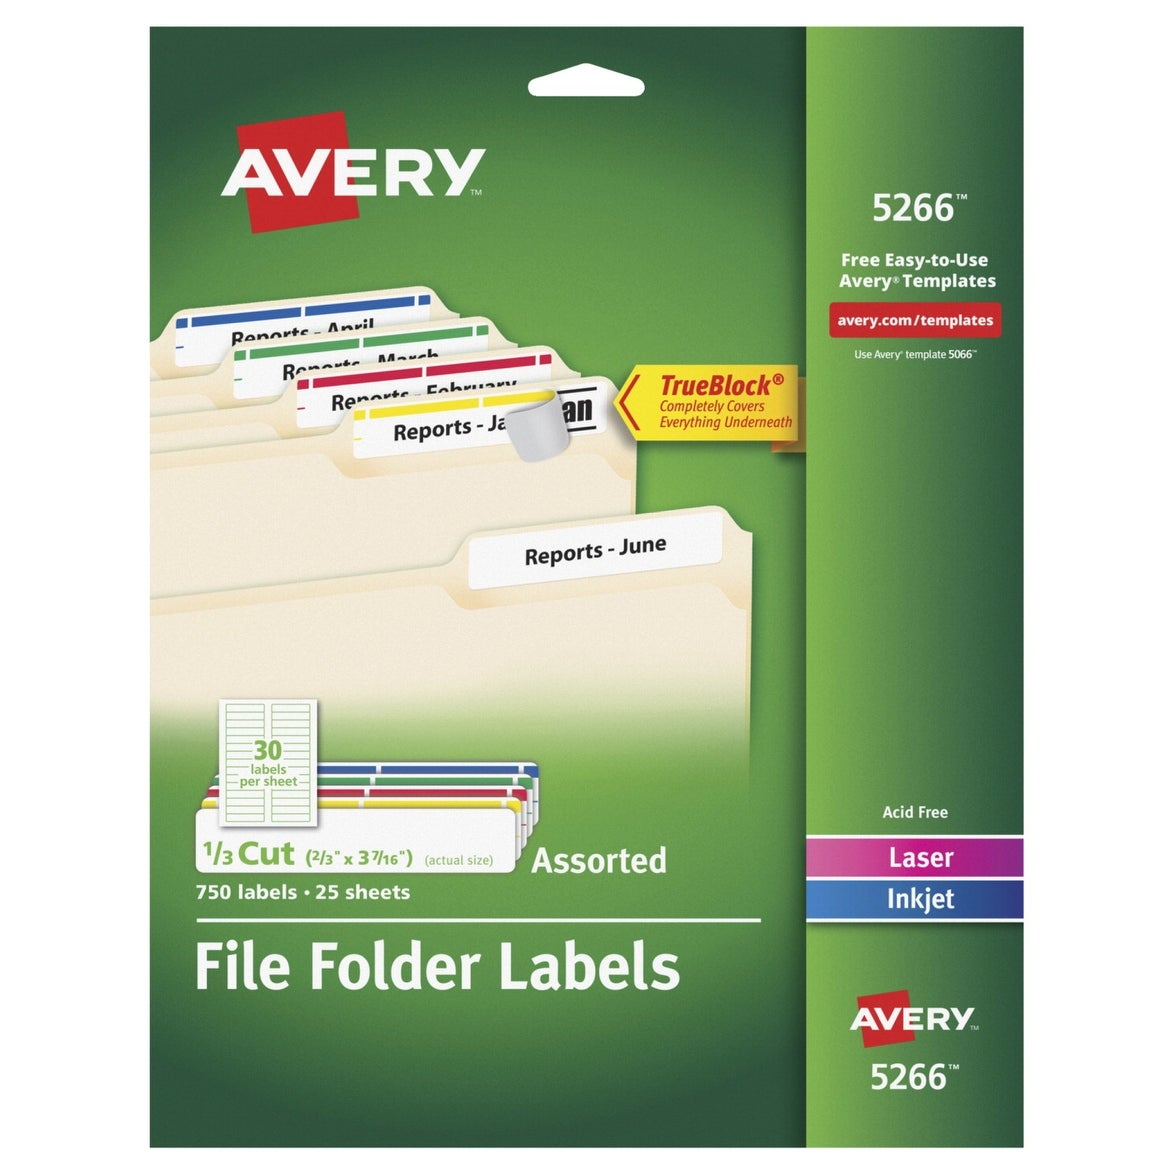 Avery 5266 13 Cut File Folder Labels Assorted Colors Pack Of 750